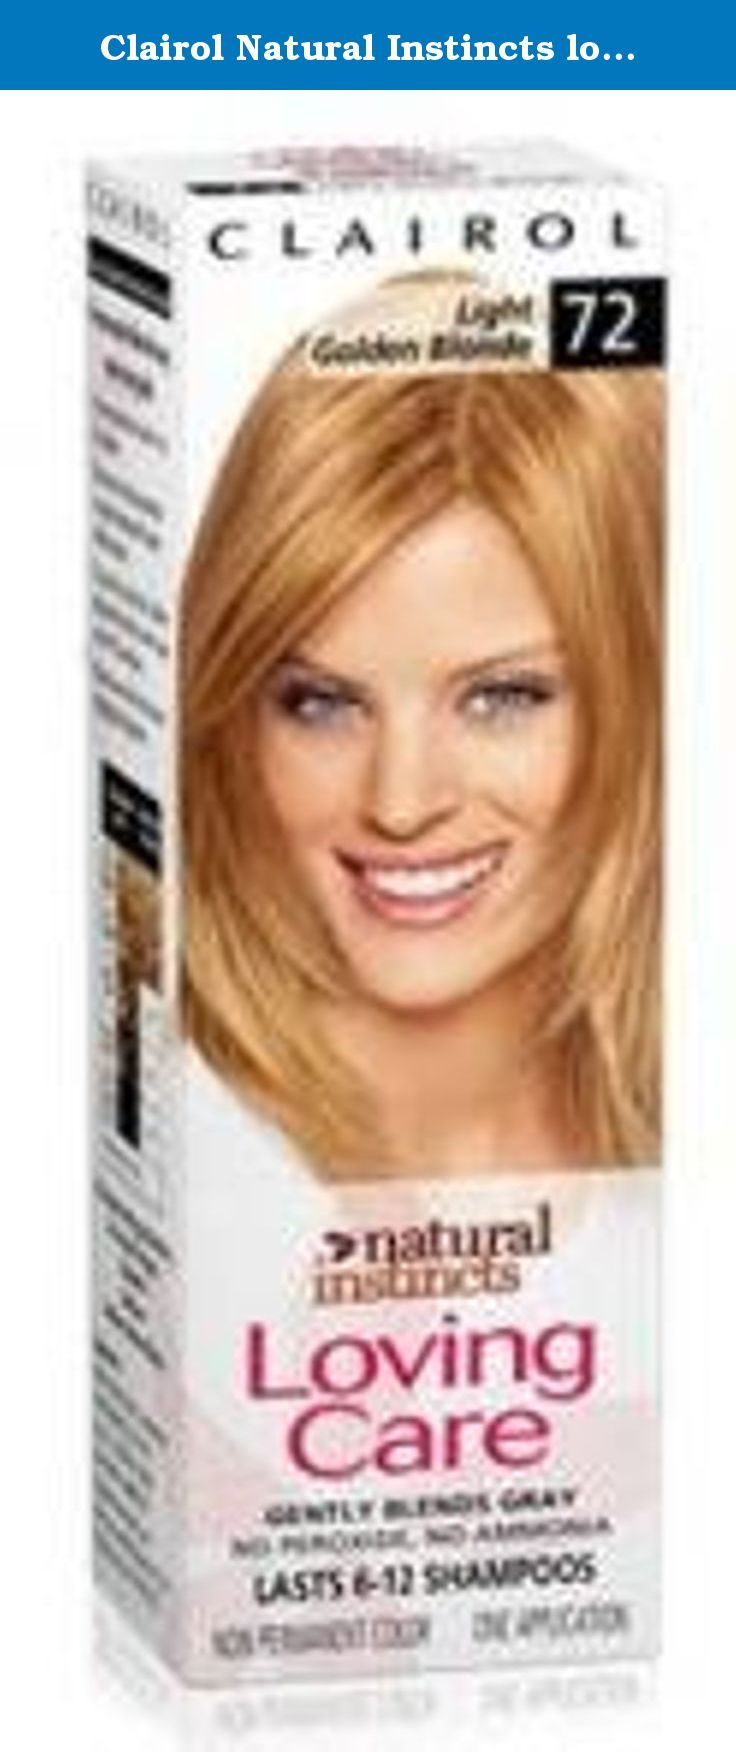 Clairol Natural Instincts Loving Care Non Permanent Color